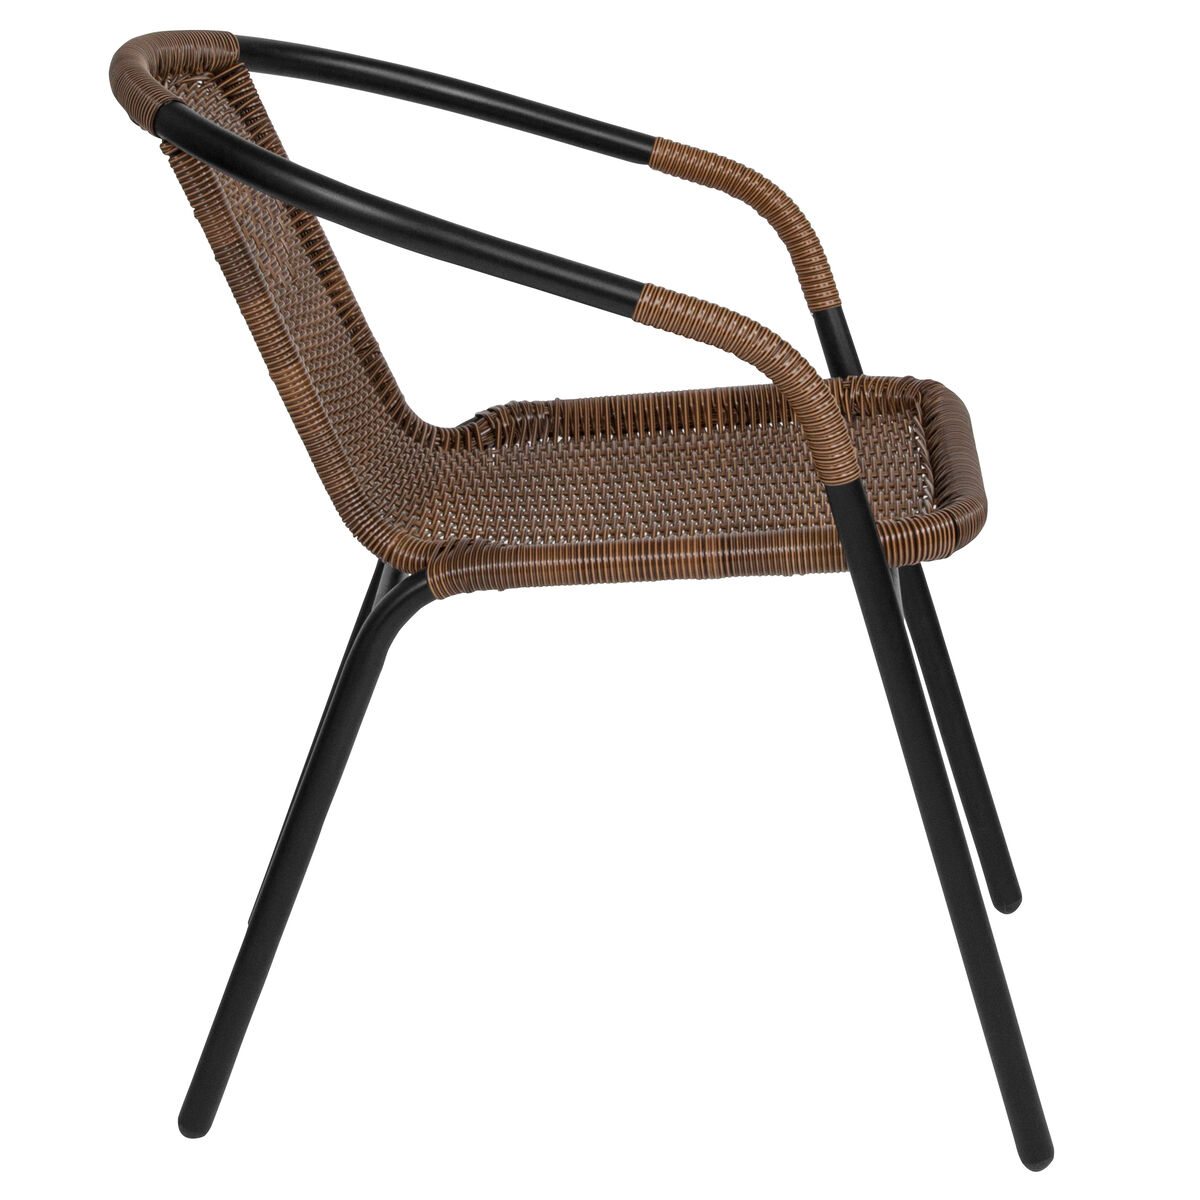 brown rattan stack chair tlh 037 dk bn gg stackchairs4less com